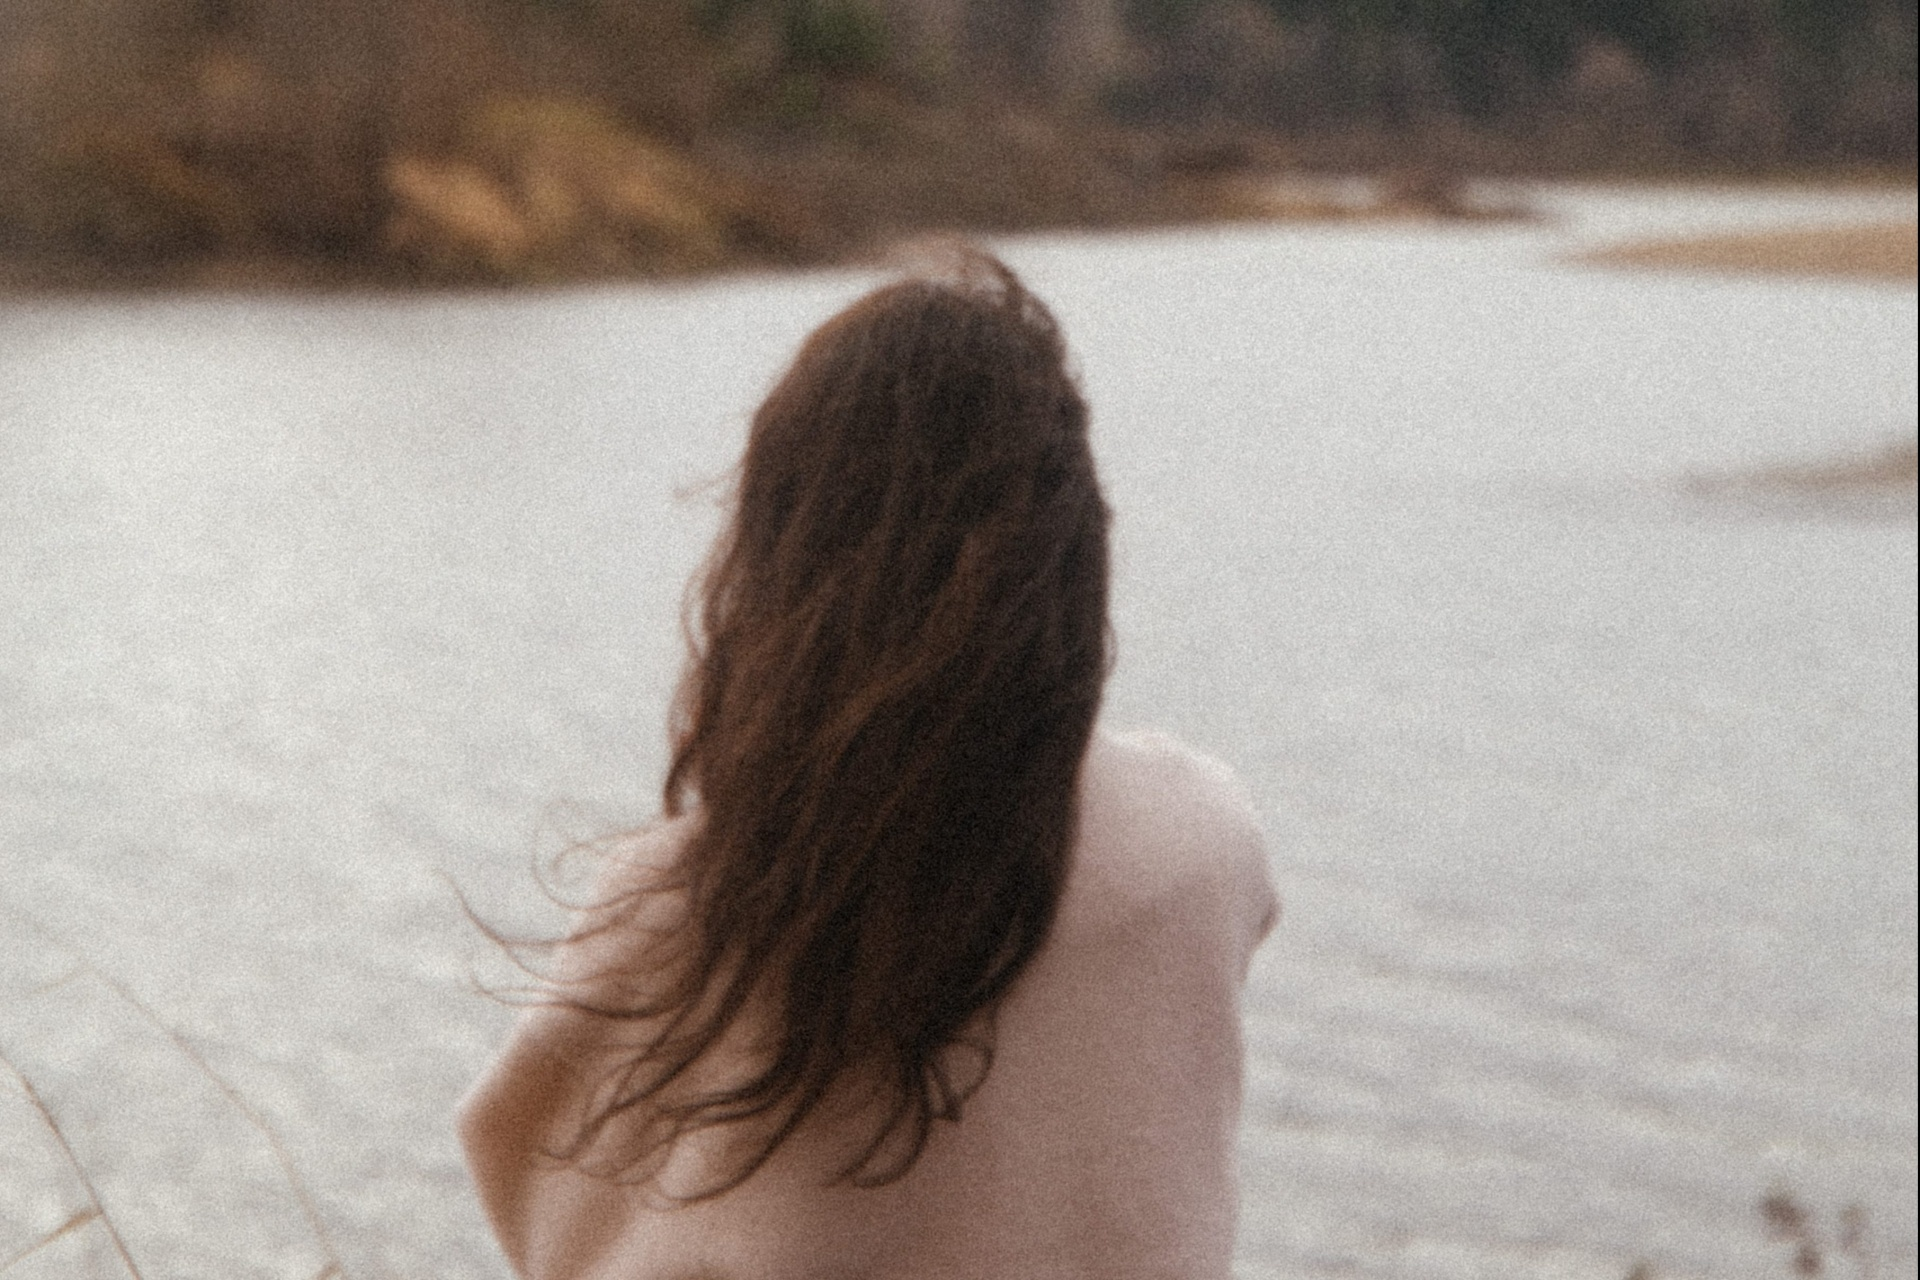 5 Things That Will Almost Always Happen When You Deal With Toxic Humans